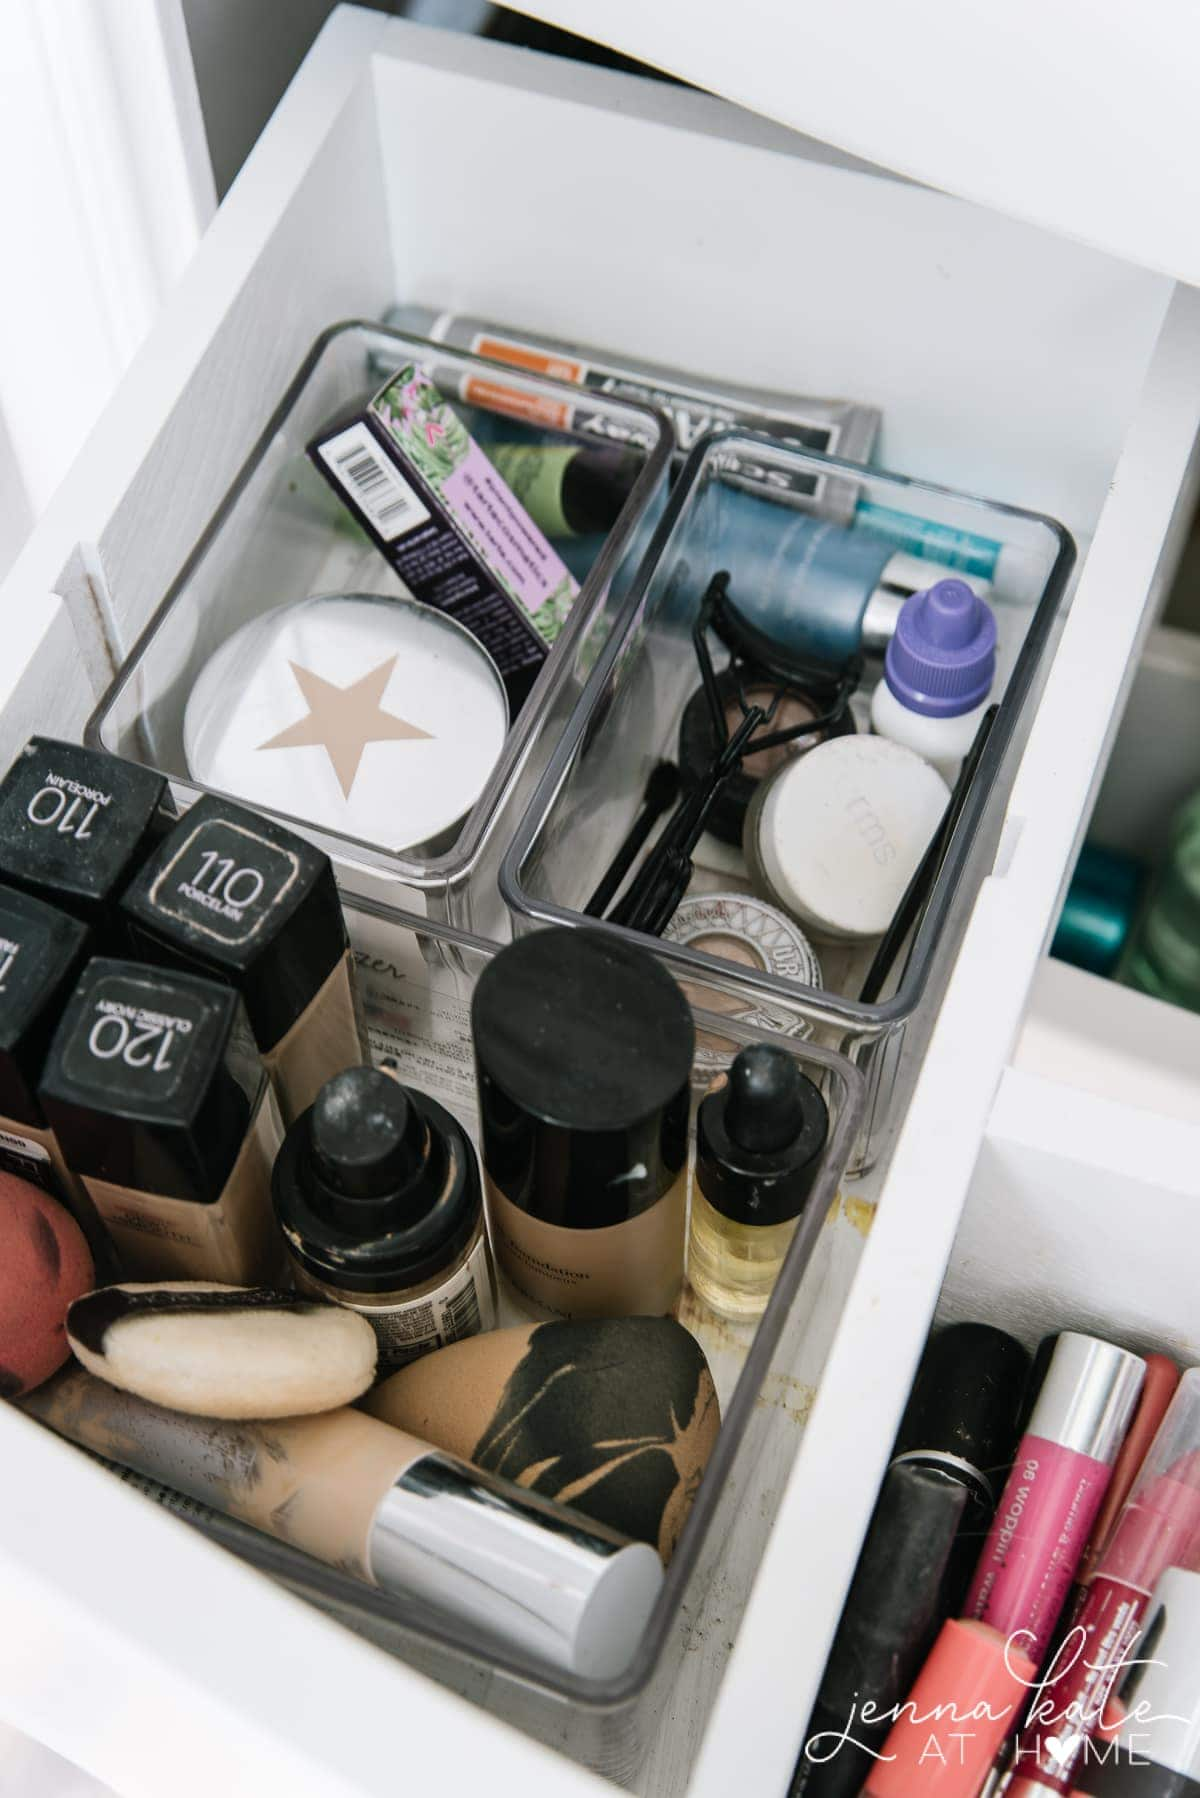 Acrylic storage bins for makeup in bathroom